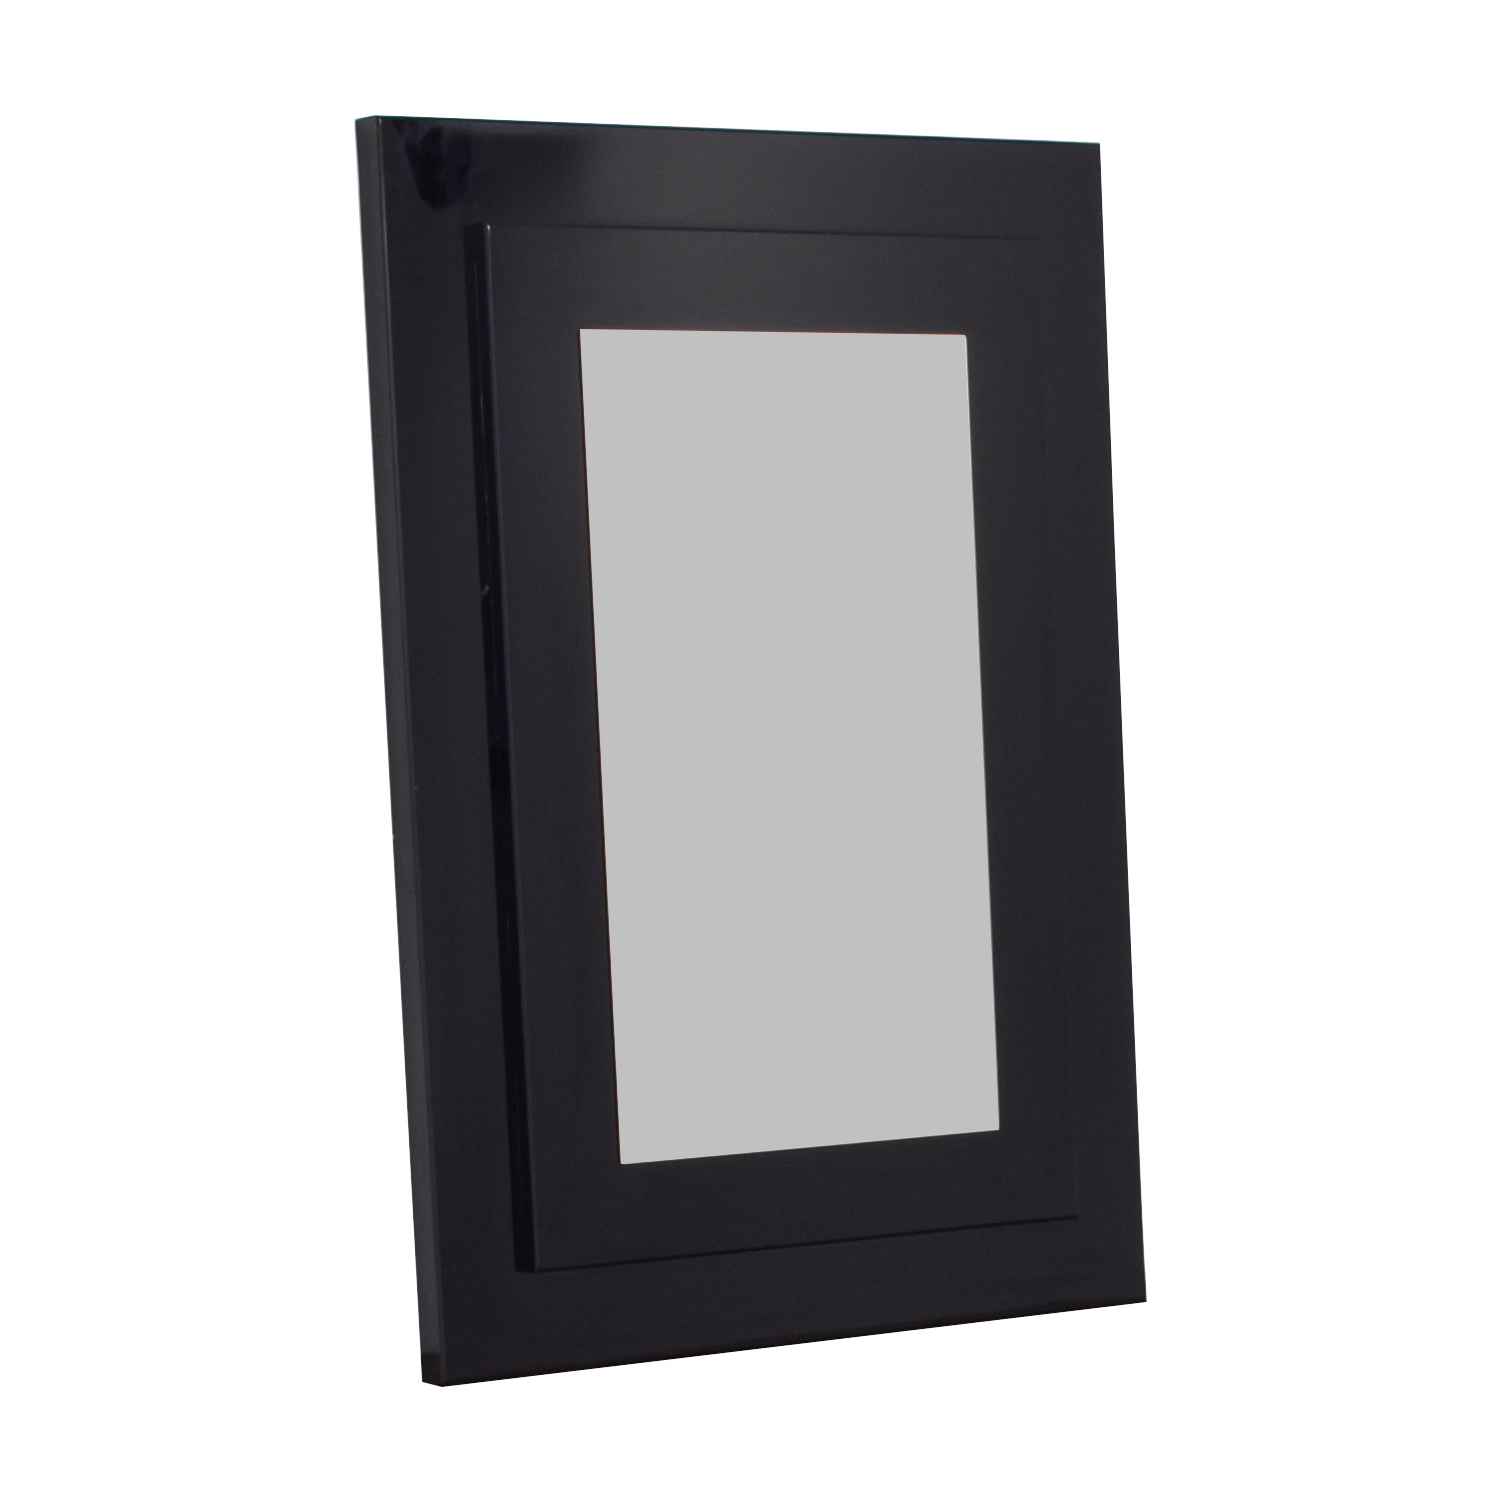 Glassworks Black Framed Wall Mirror sale